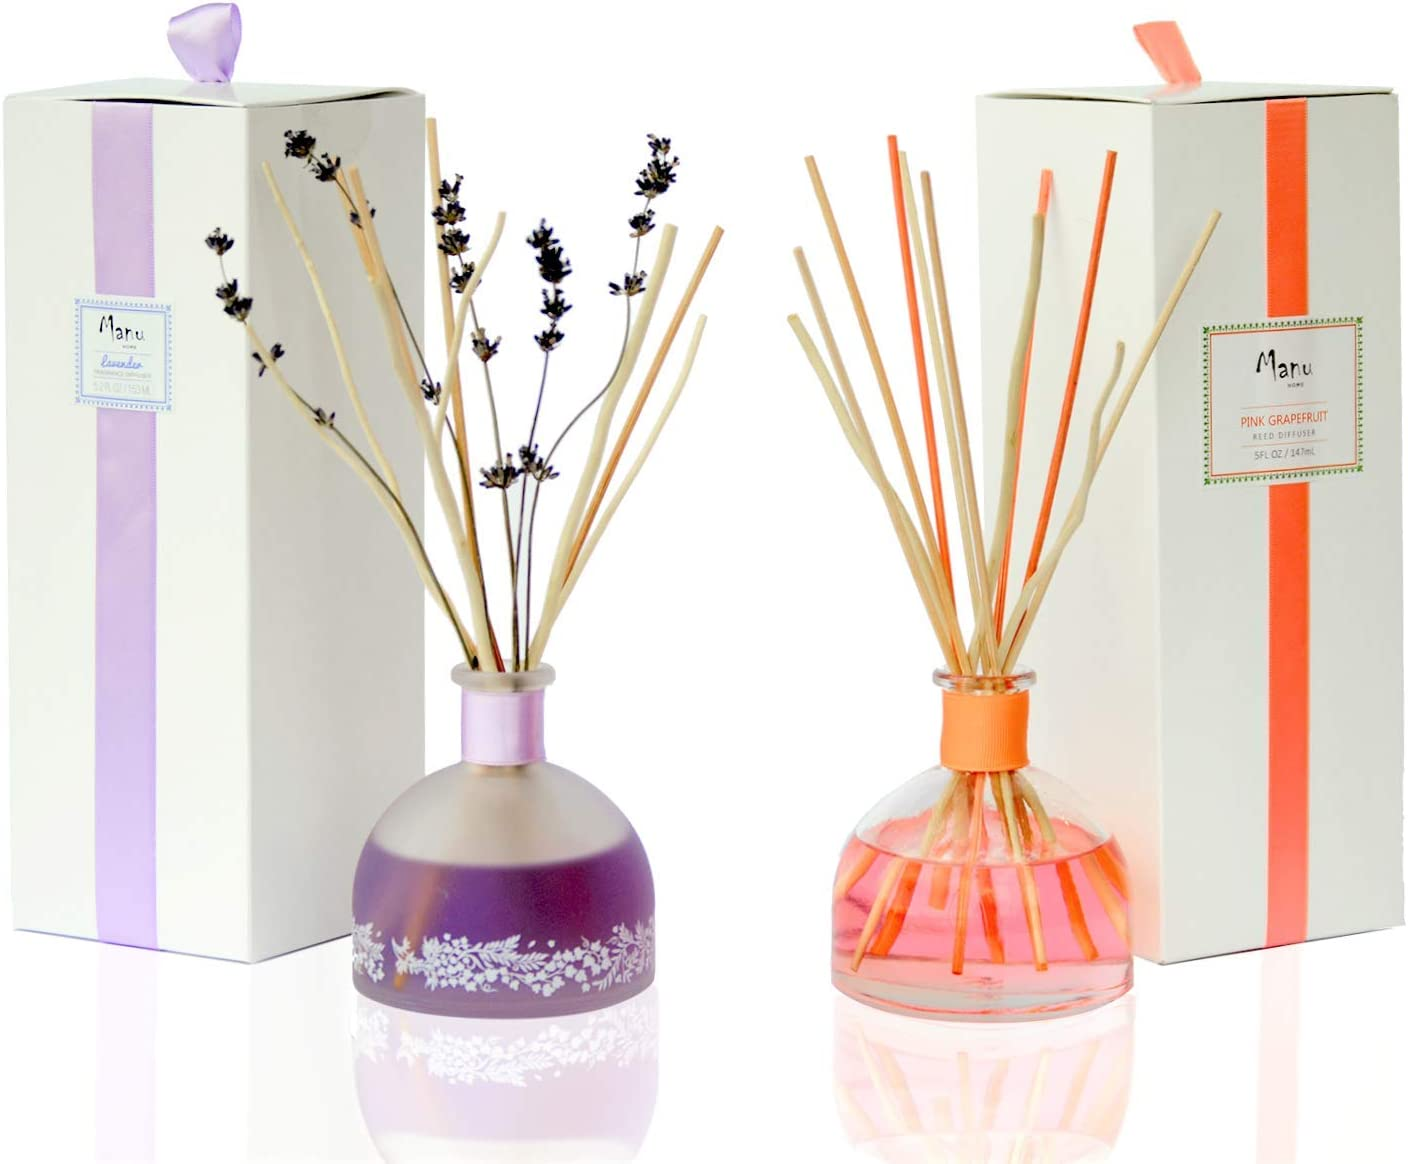 Manu Home Pink Grapefruit and Calm Lavender Reed Diffuser Sets | Best Value - 2 Pack Set | Luxurious Aromatherapy Bedroom and Kitchen Diffuser Sets | Made in USA~